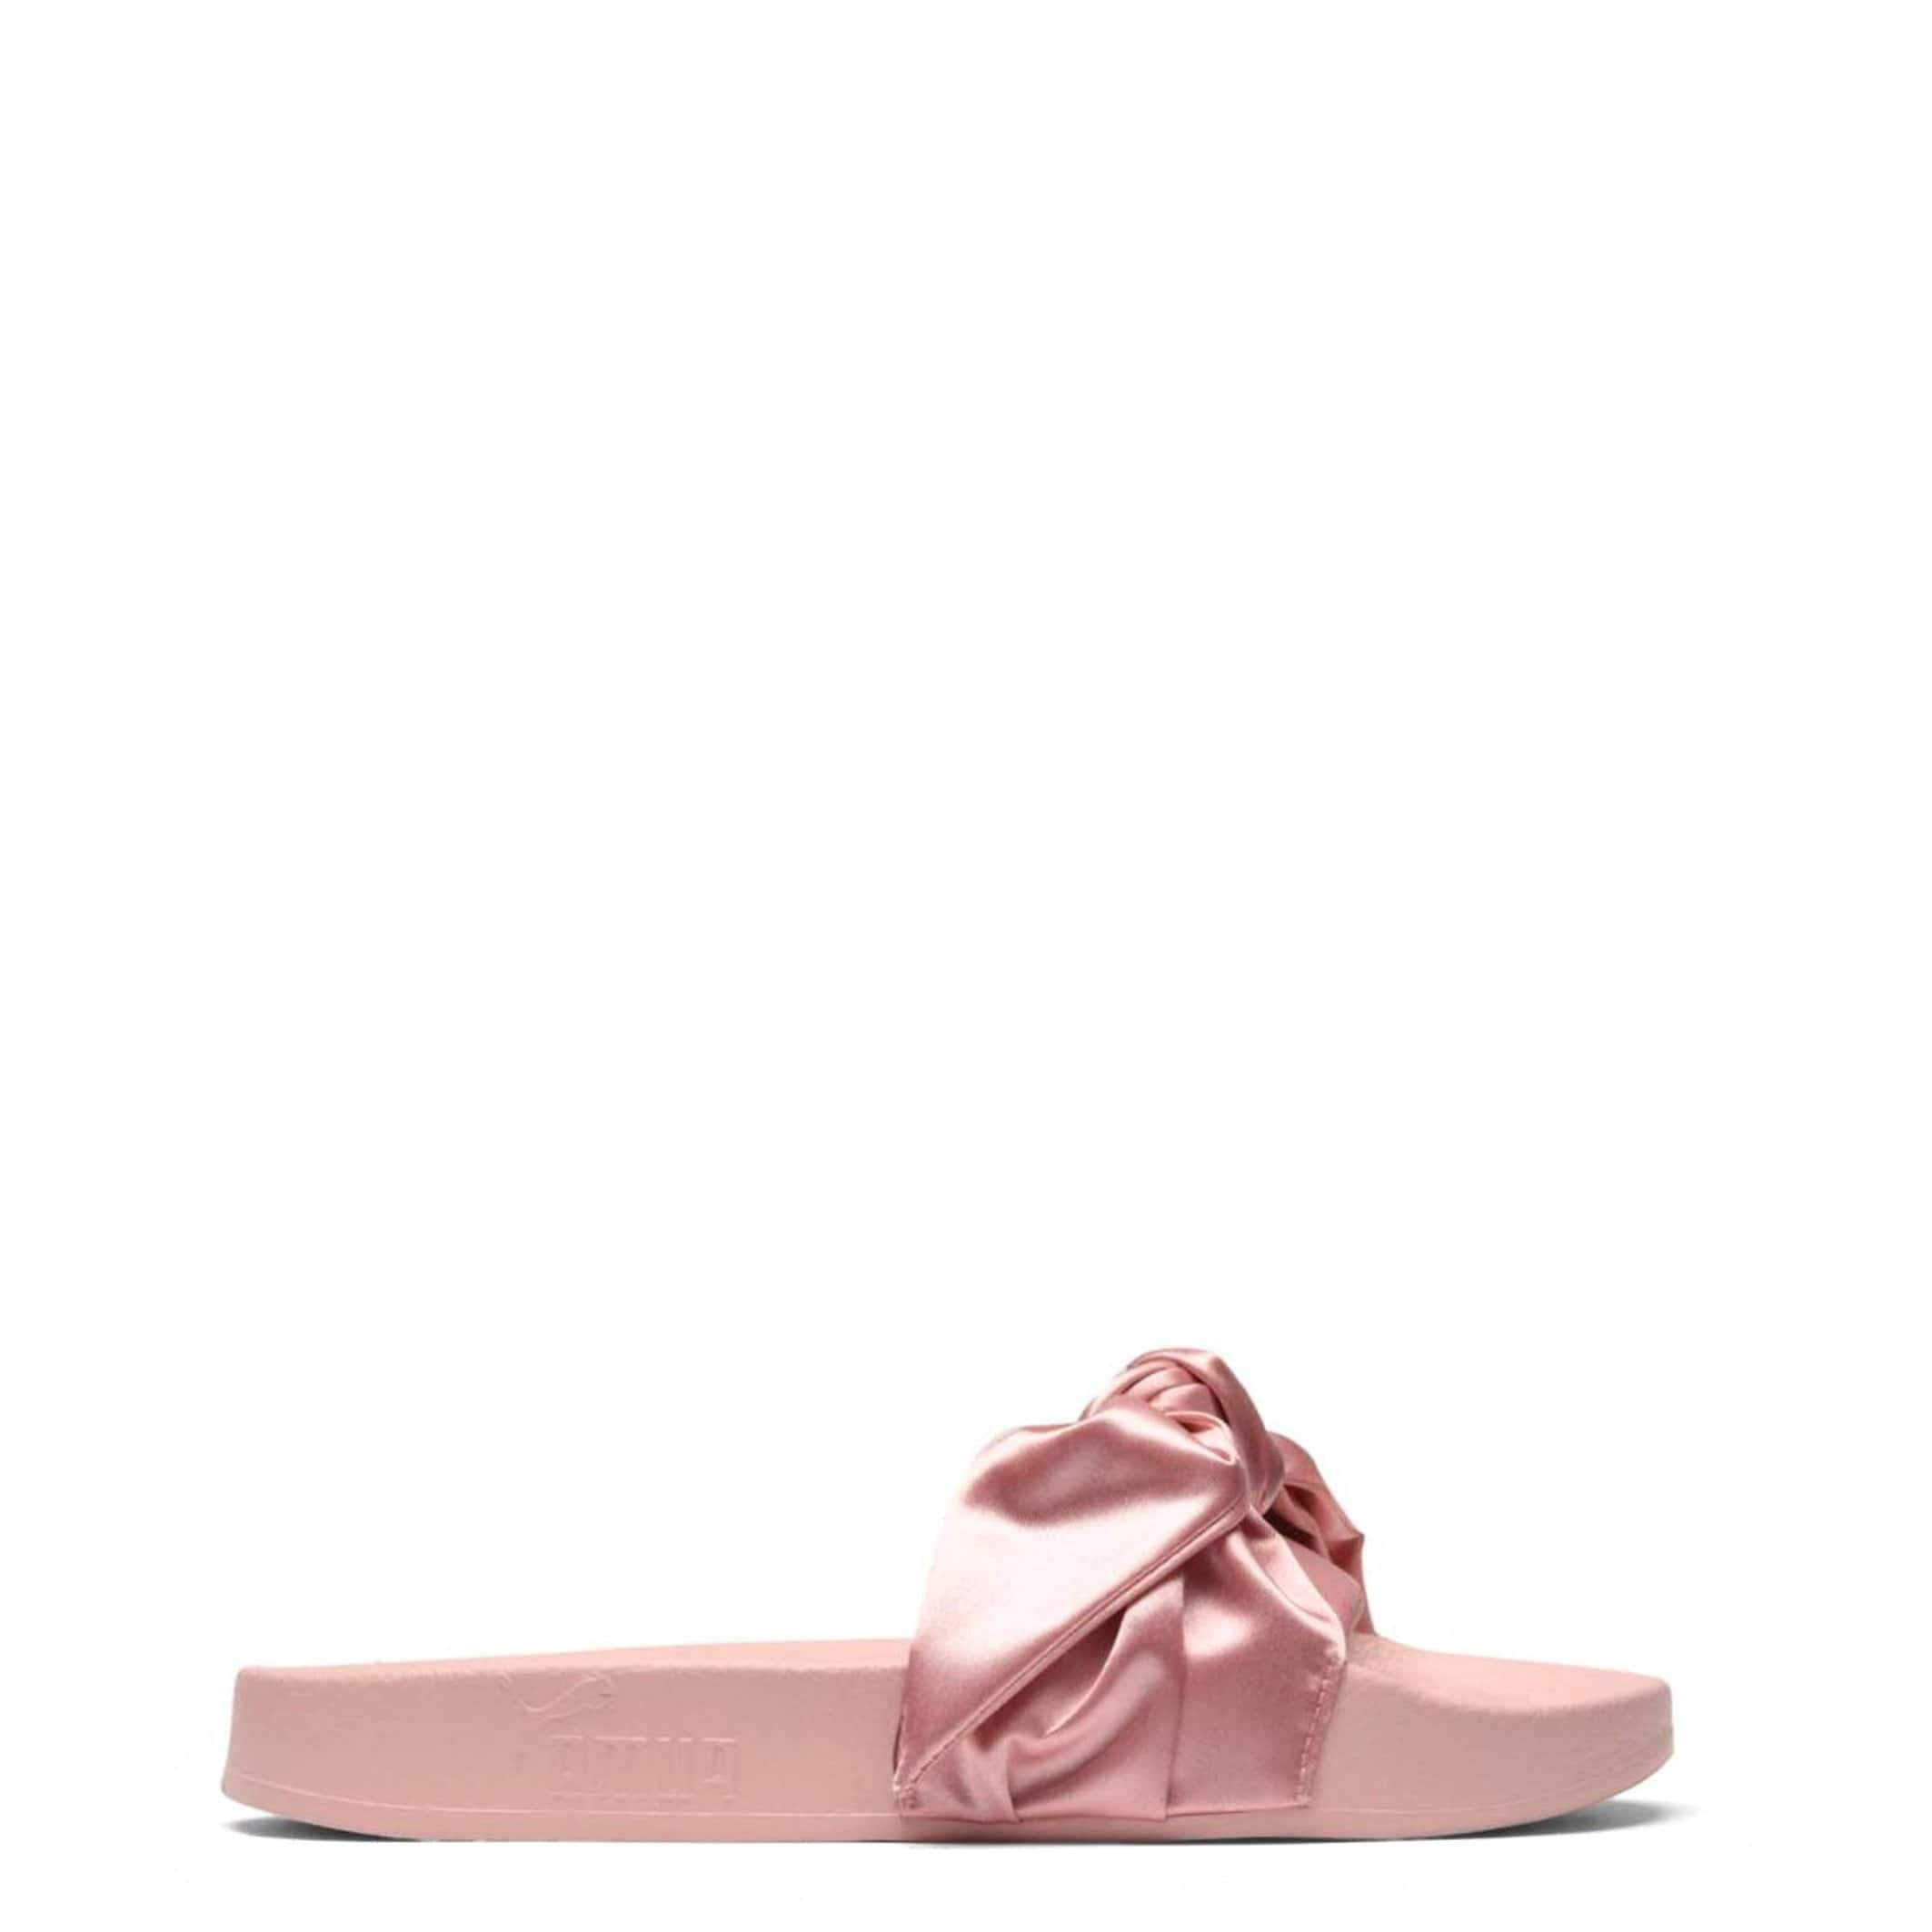 Puma Shoes Flip Flops pink / UK 6 Puma - 365774